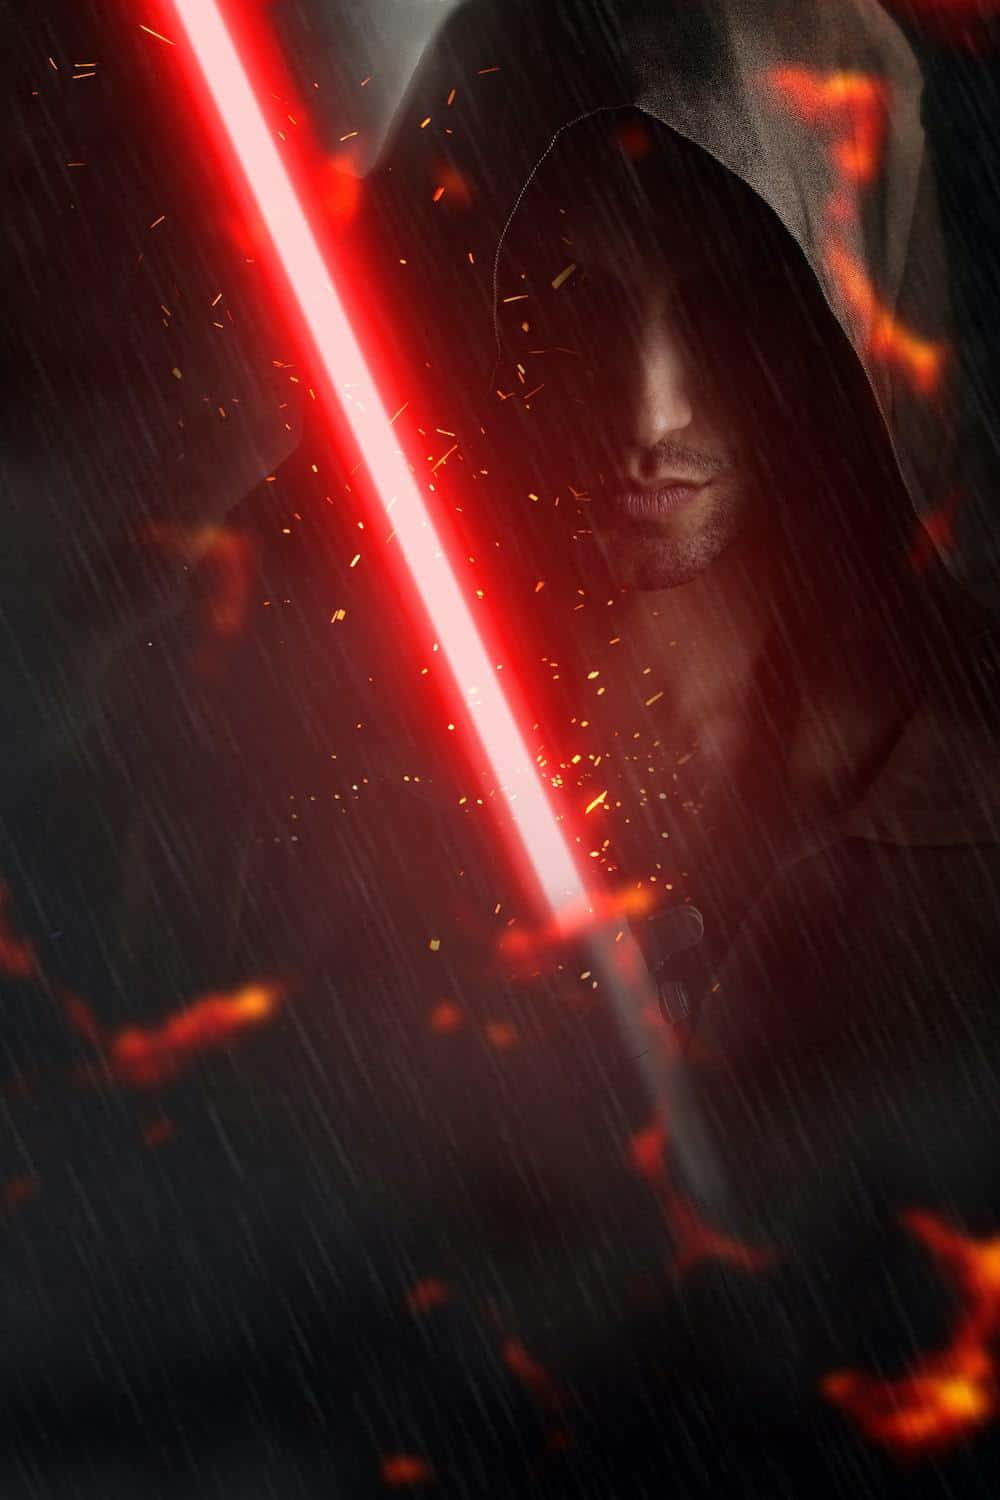 Starkiller's Lightsaber Form - How Powerful Is Galen Marek In Star Wars?